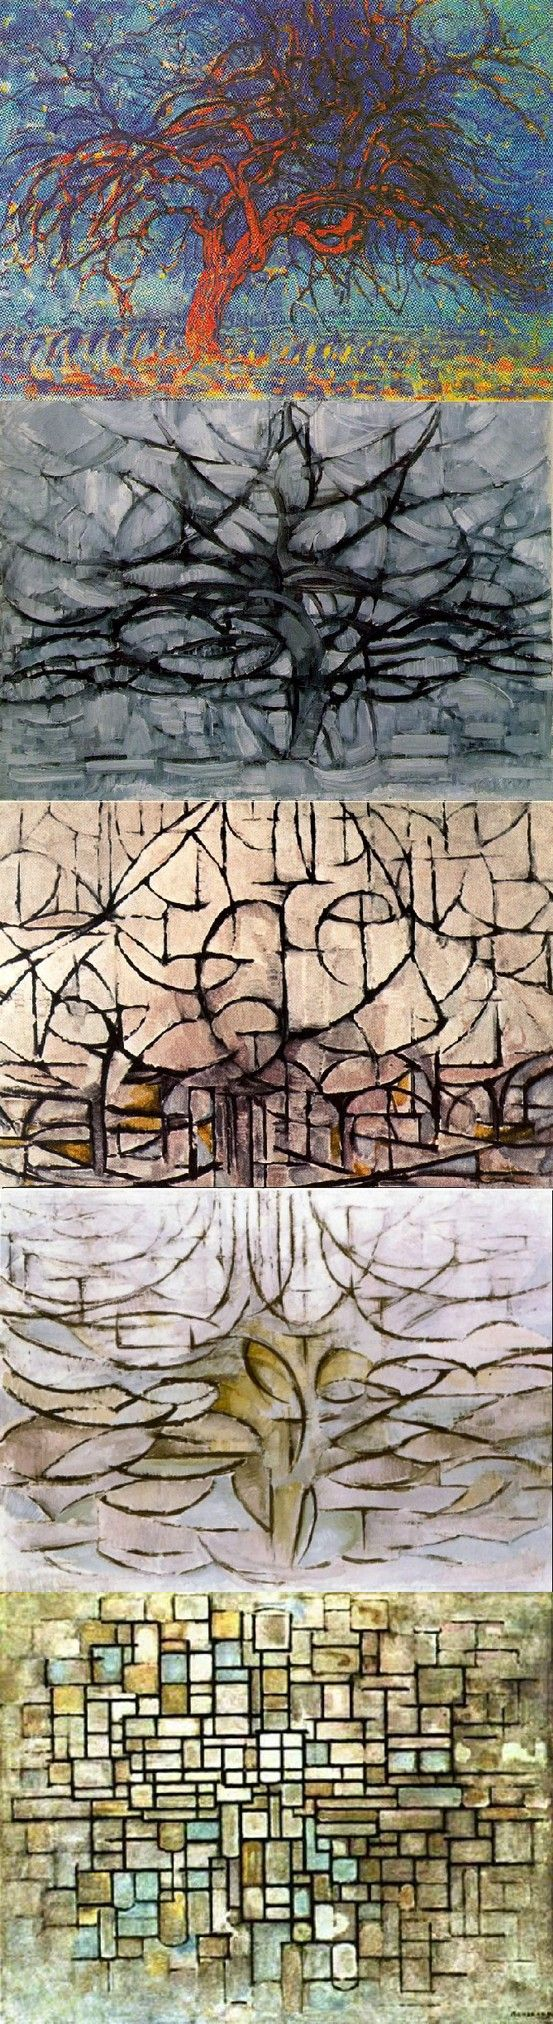 Mondrian's Trees My favourite series of paintings. Love the point between representation and abstraction and the still painterly style.